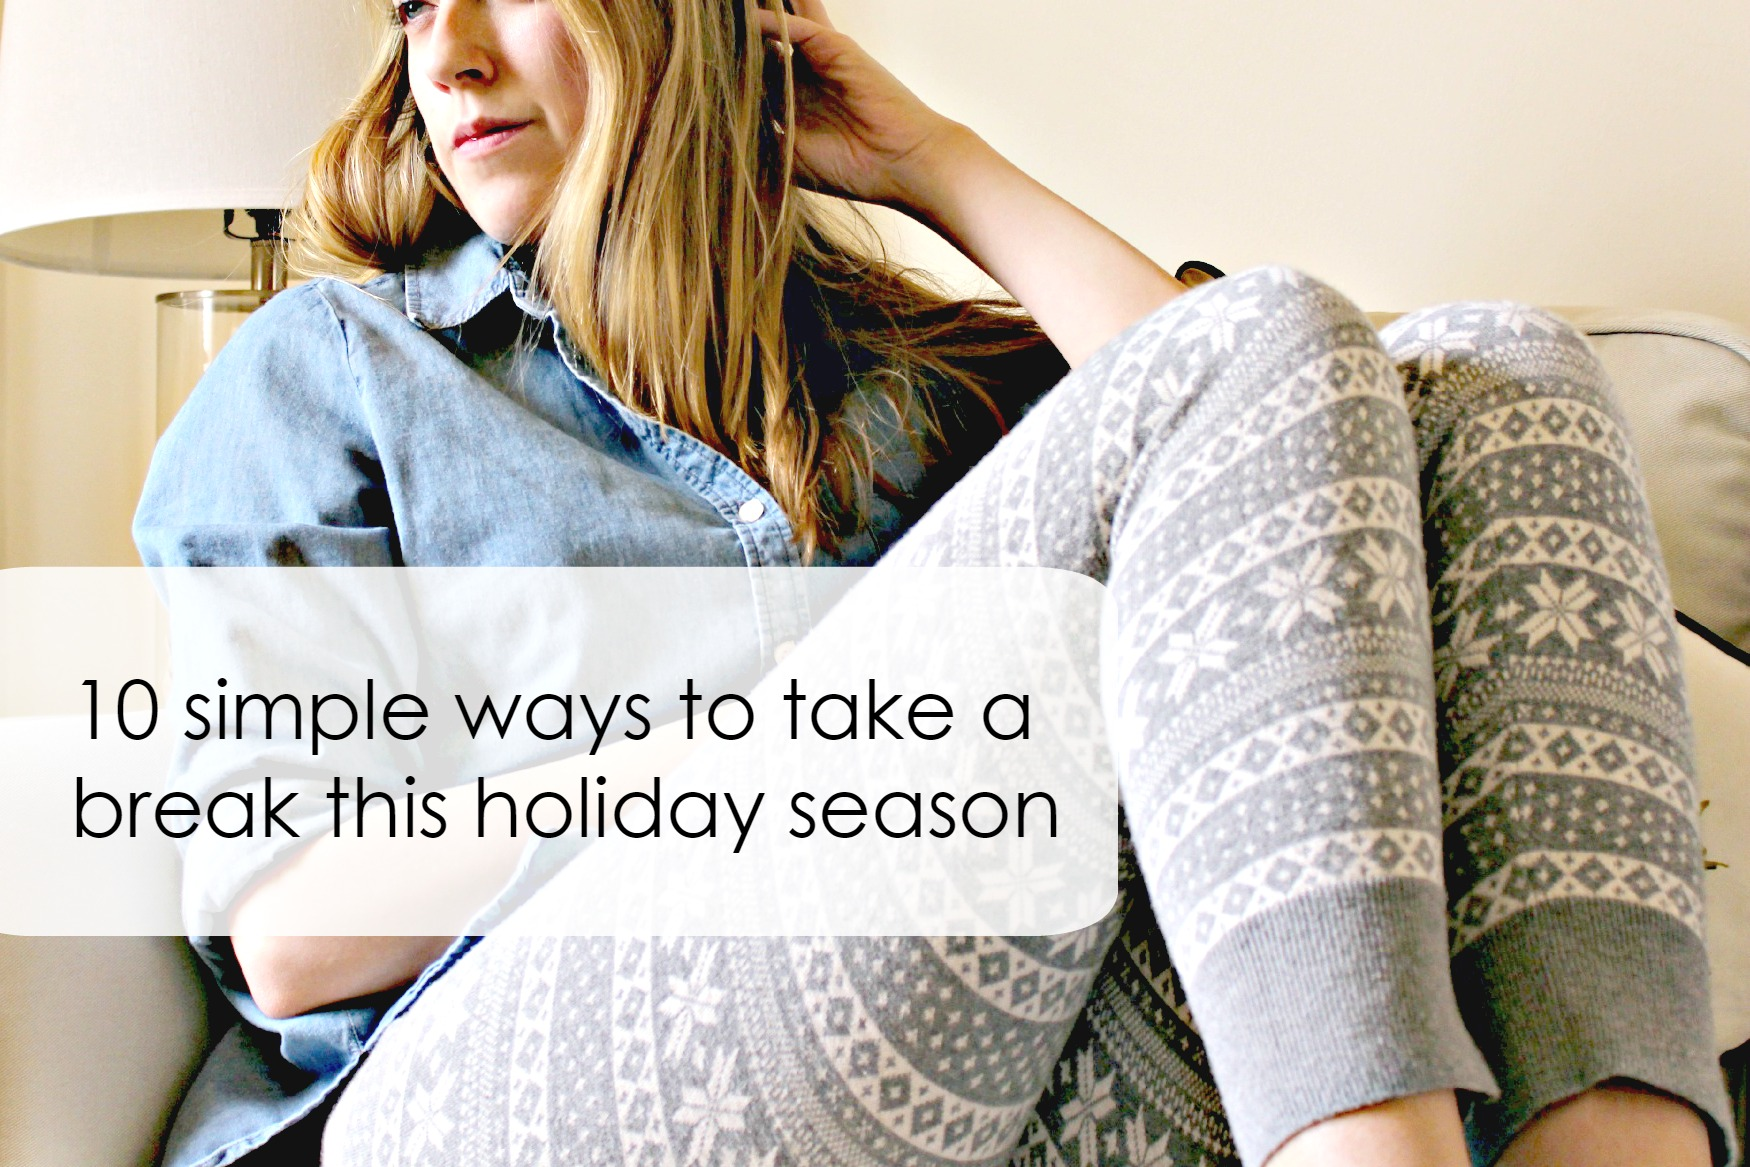 Ten Simple Ways to Take a Break This Holiday Season